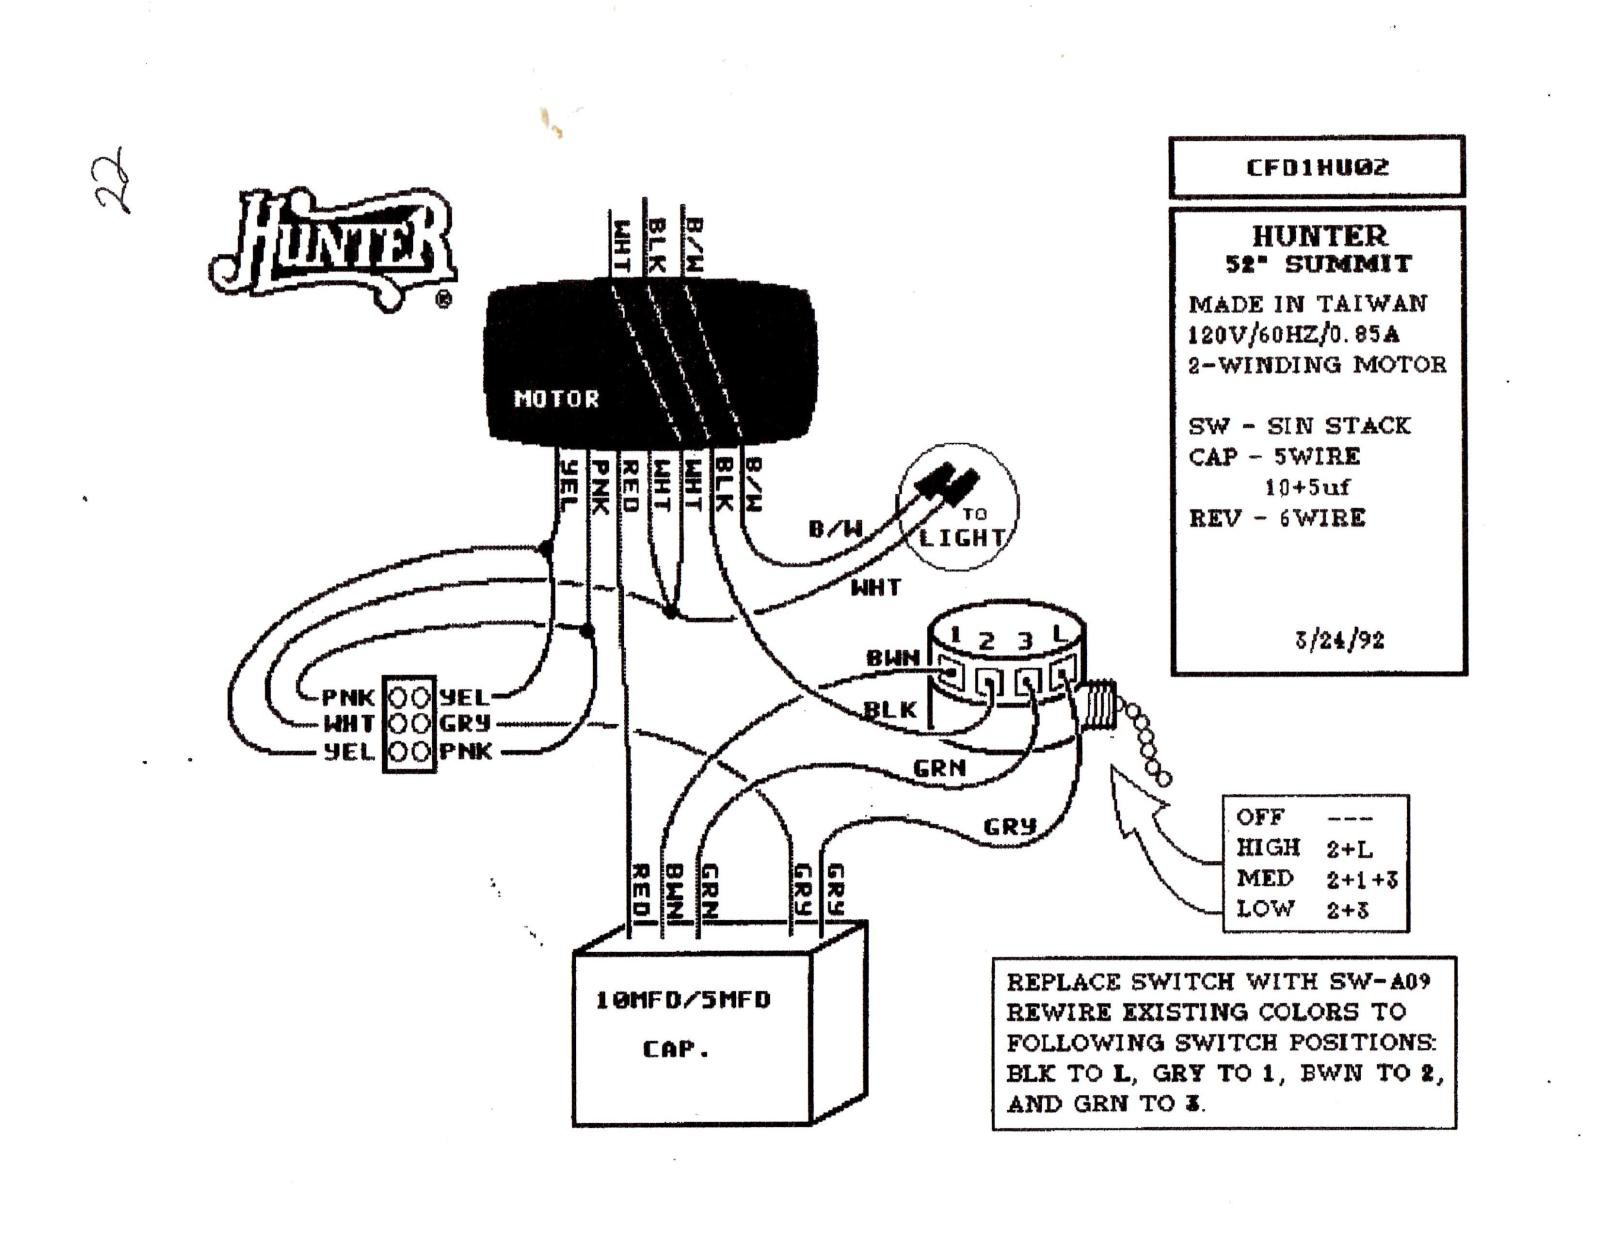 hunter pump start relay wiring diagram sample. Black Bedroom Furniture Sets. Home Design Ideas